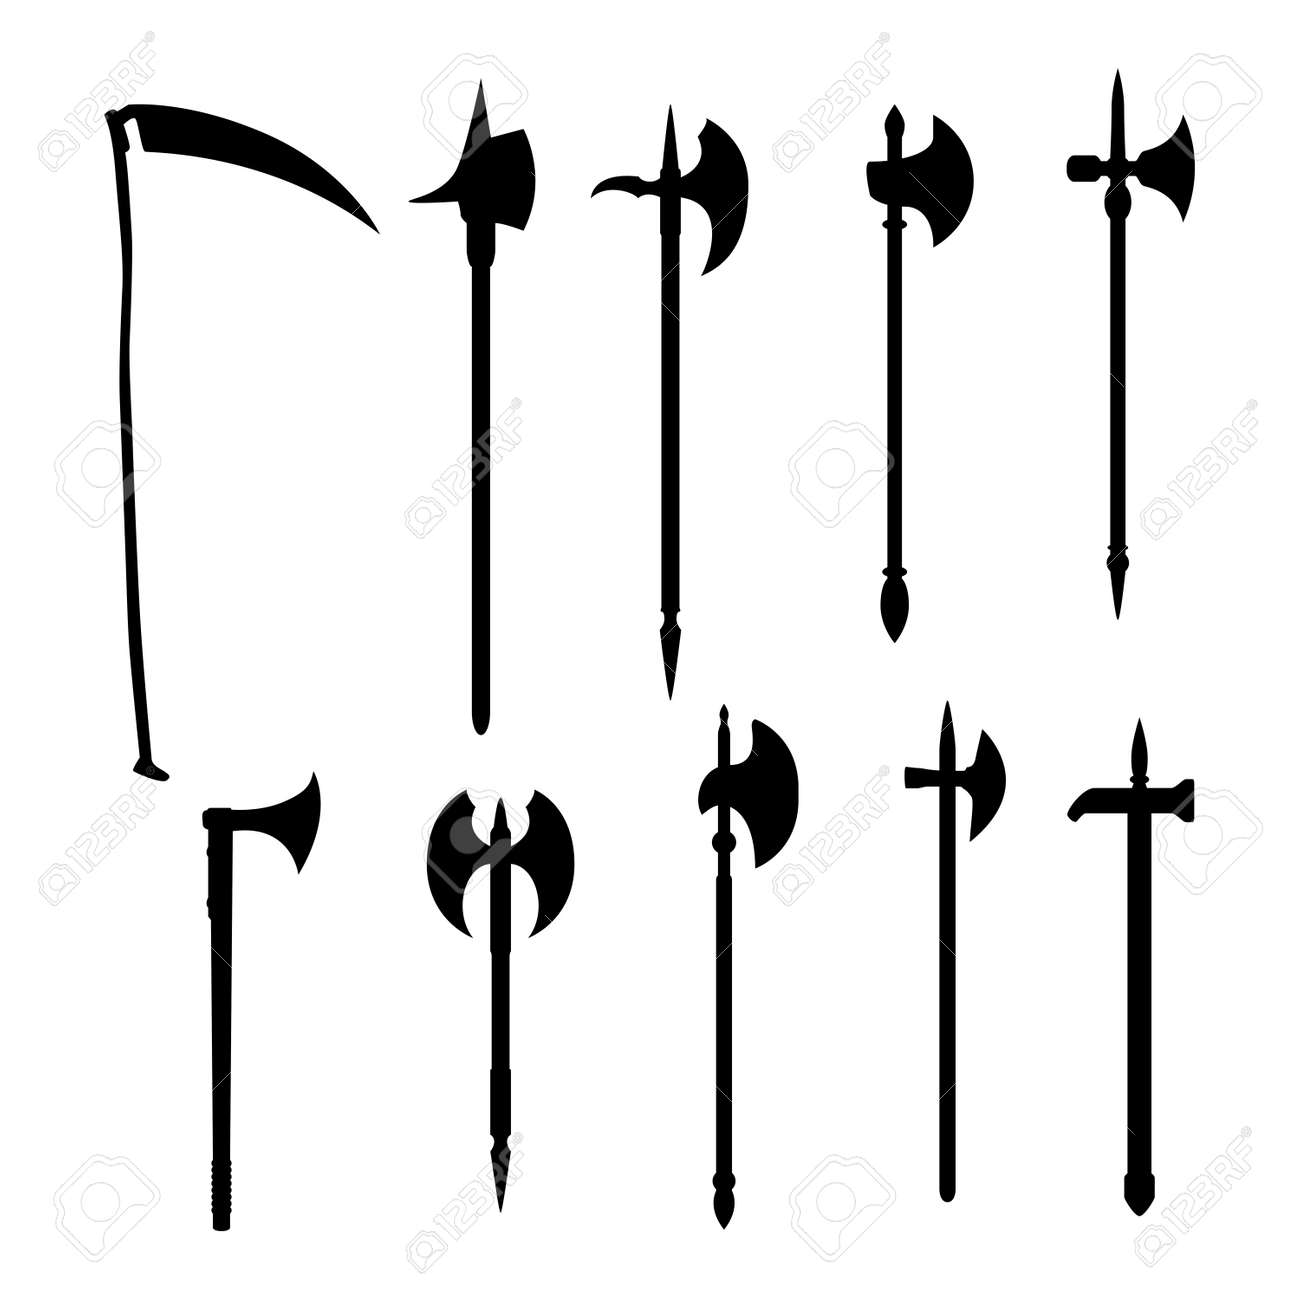 Medieval vector weapons set: battleaxe dark silhouette isolated on white background. - 144265925